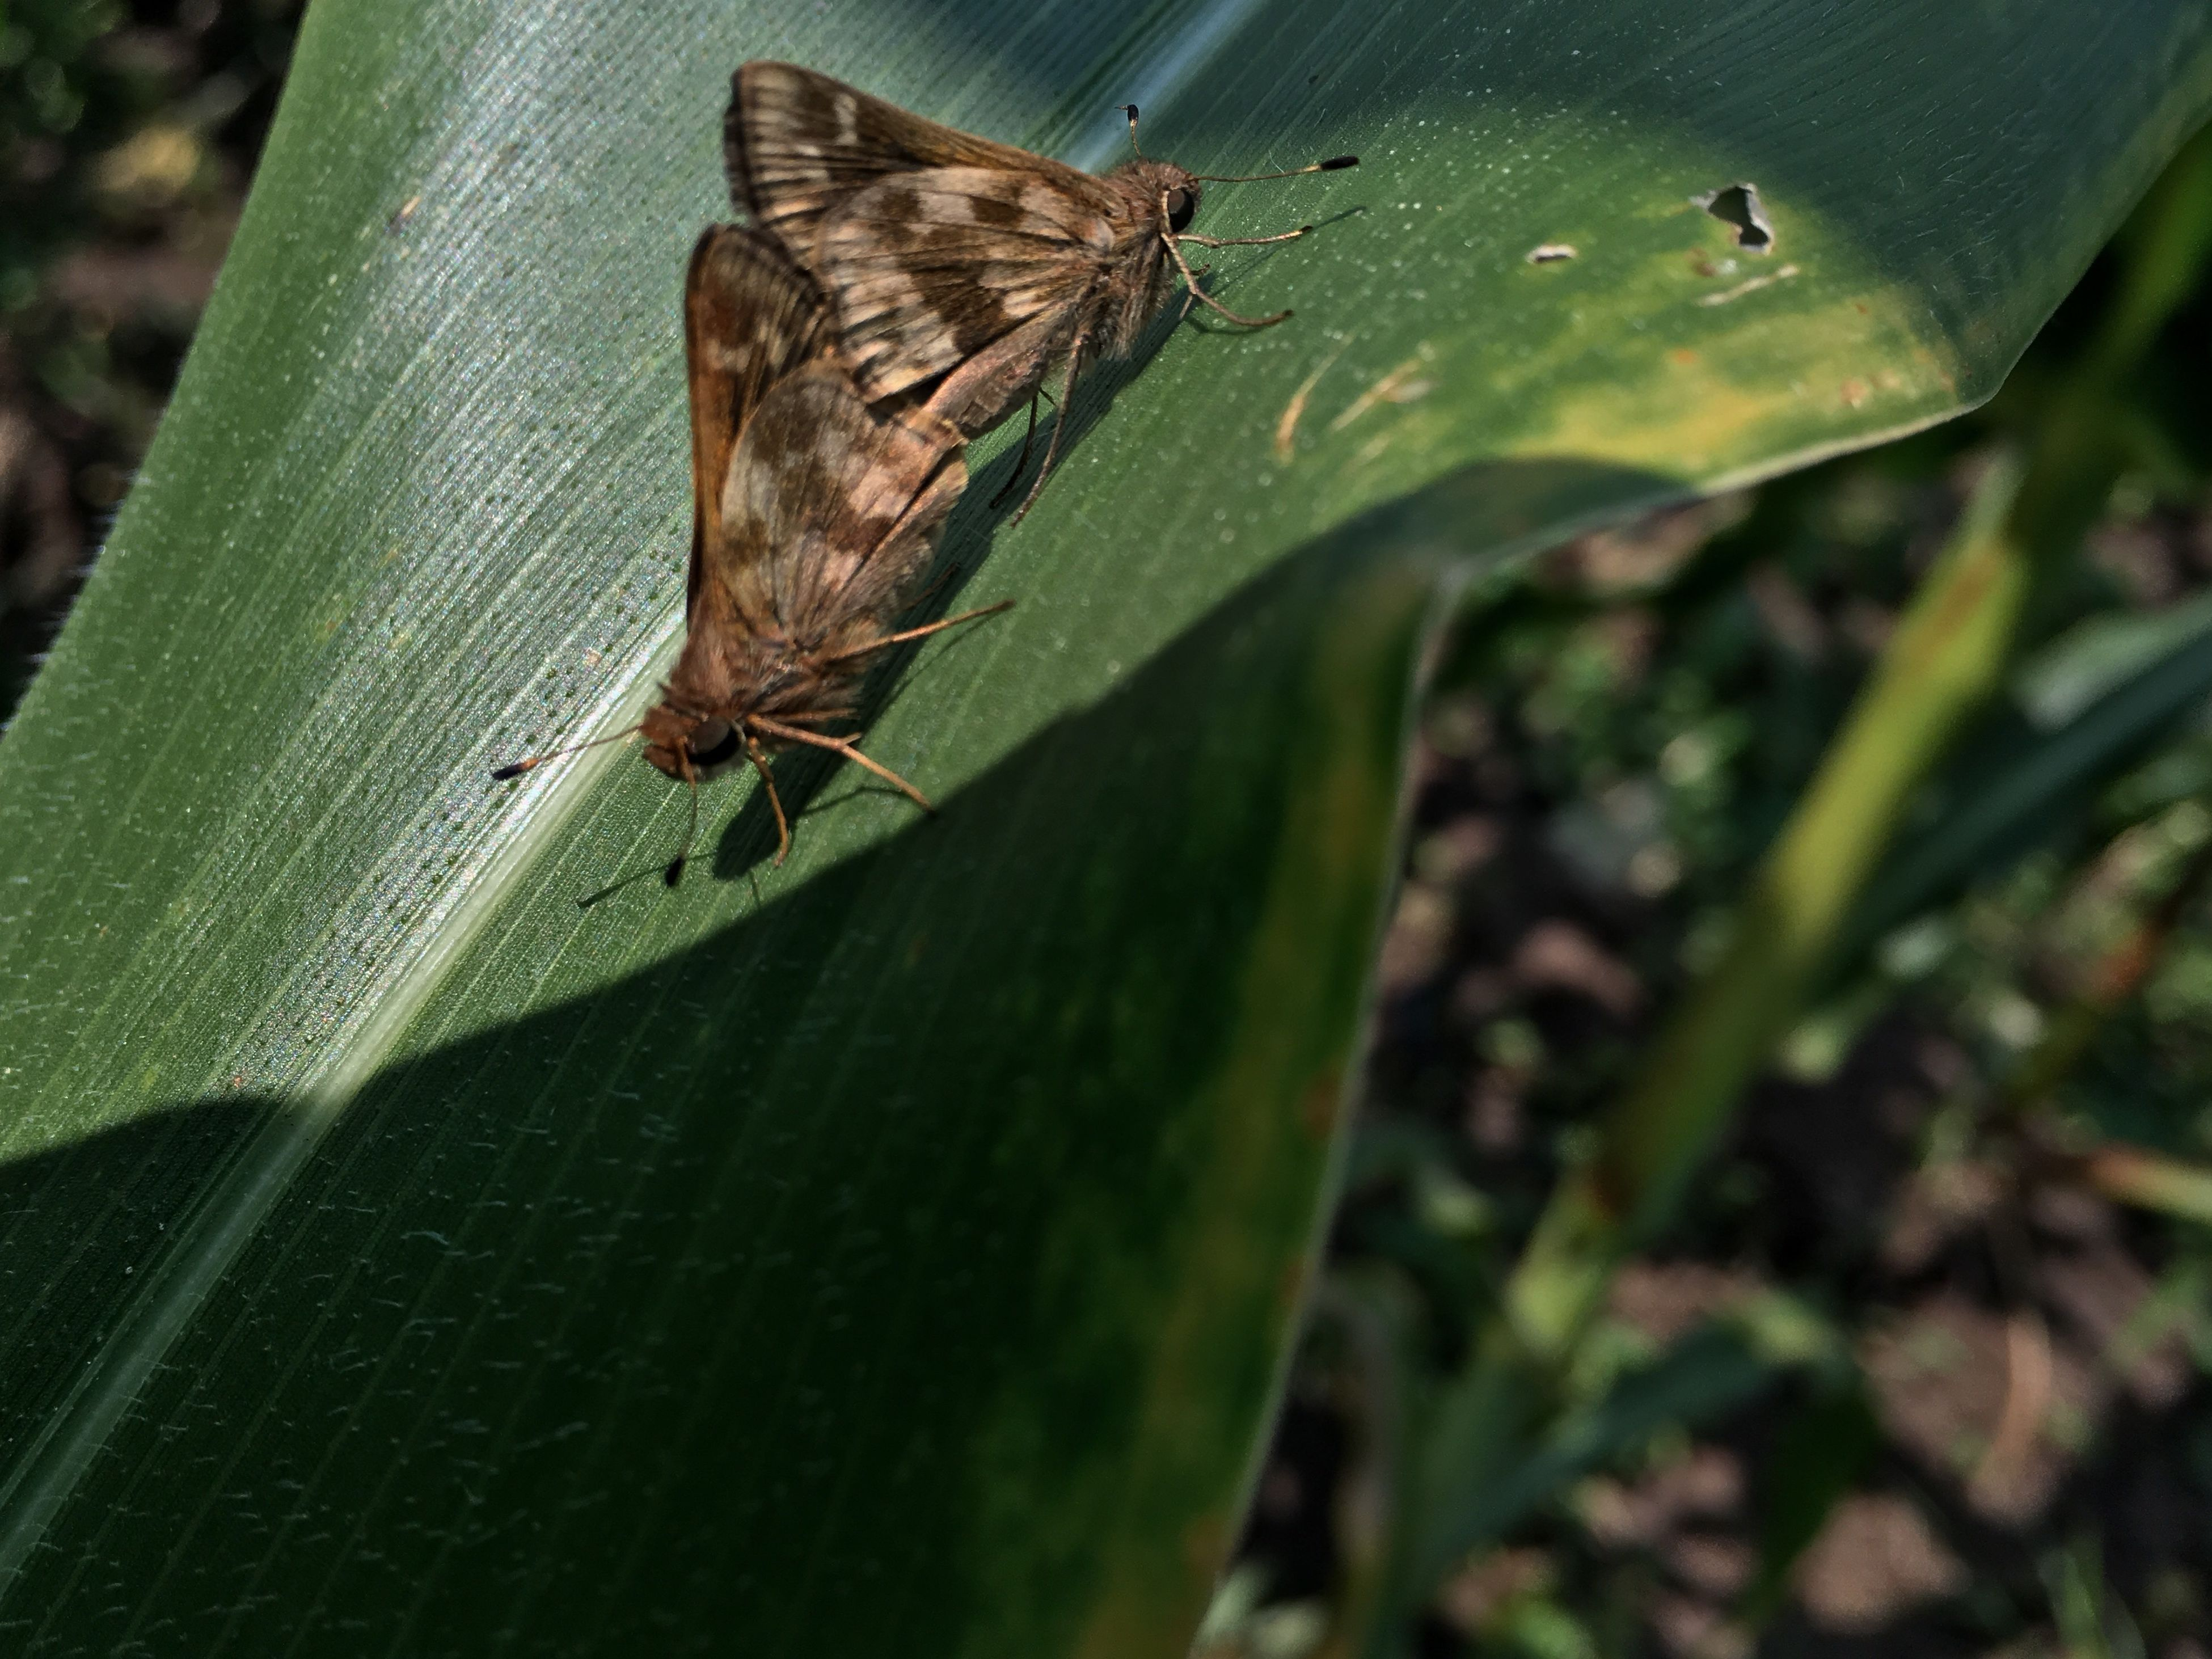 animals in the wild, insect, wildlife, one animal, animal themes, close-up, selective focus, moth, butterfly - insect, zoology, butterfly, green color, animal wing, invertebrate, nature, focus on foreground, arthropod, outdoors, day, no people, green